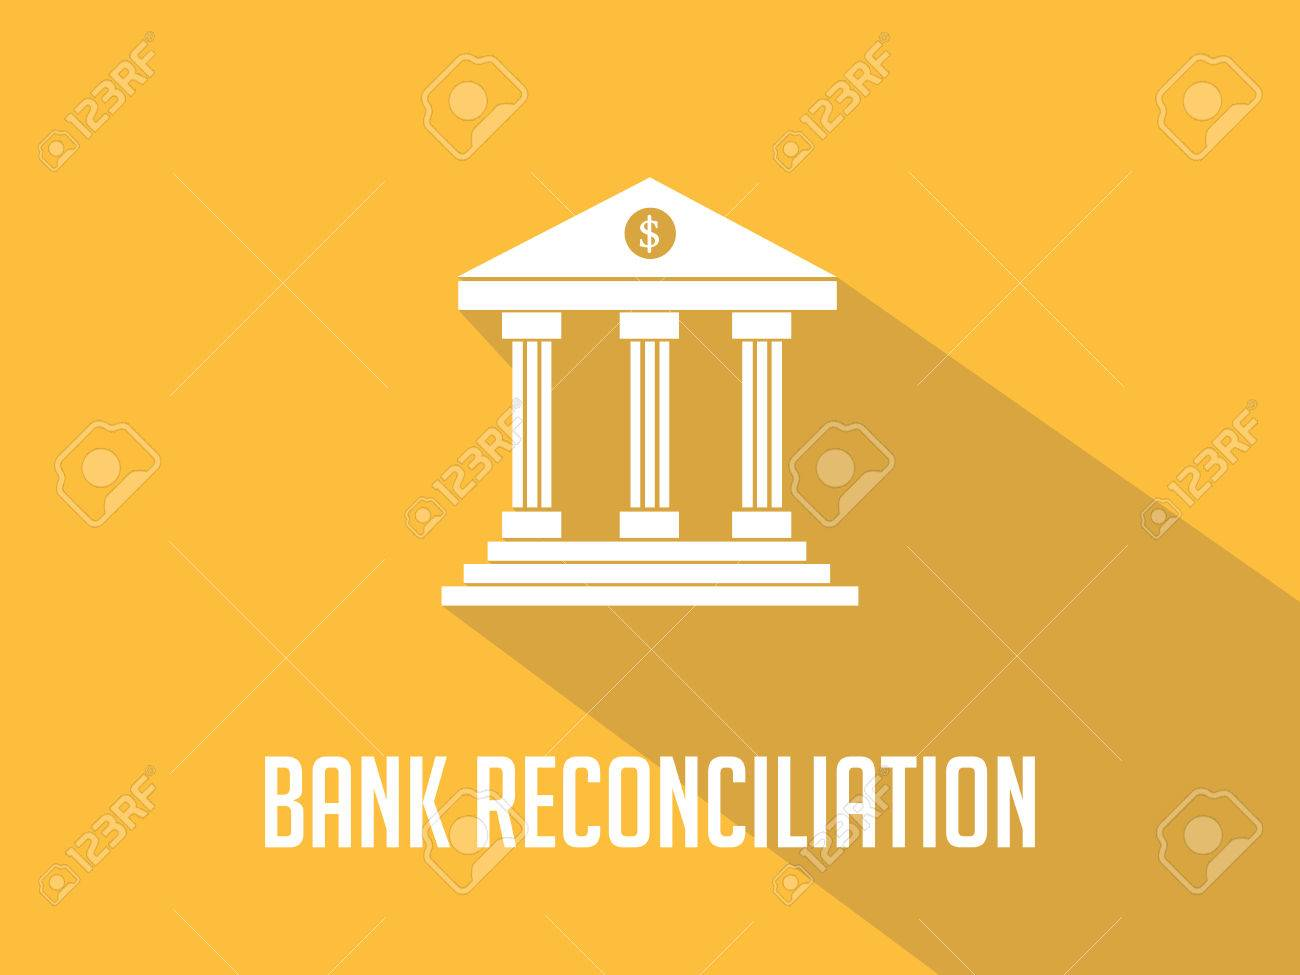 Bank Reconciliation White Text With Bank Office Building 1300x975